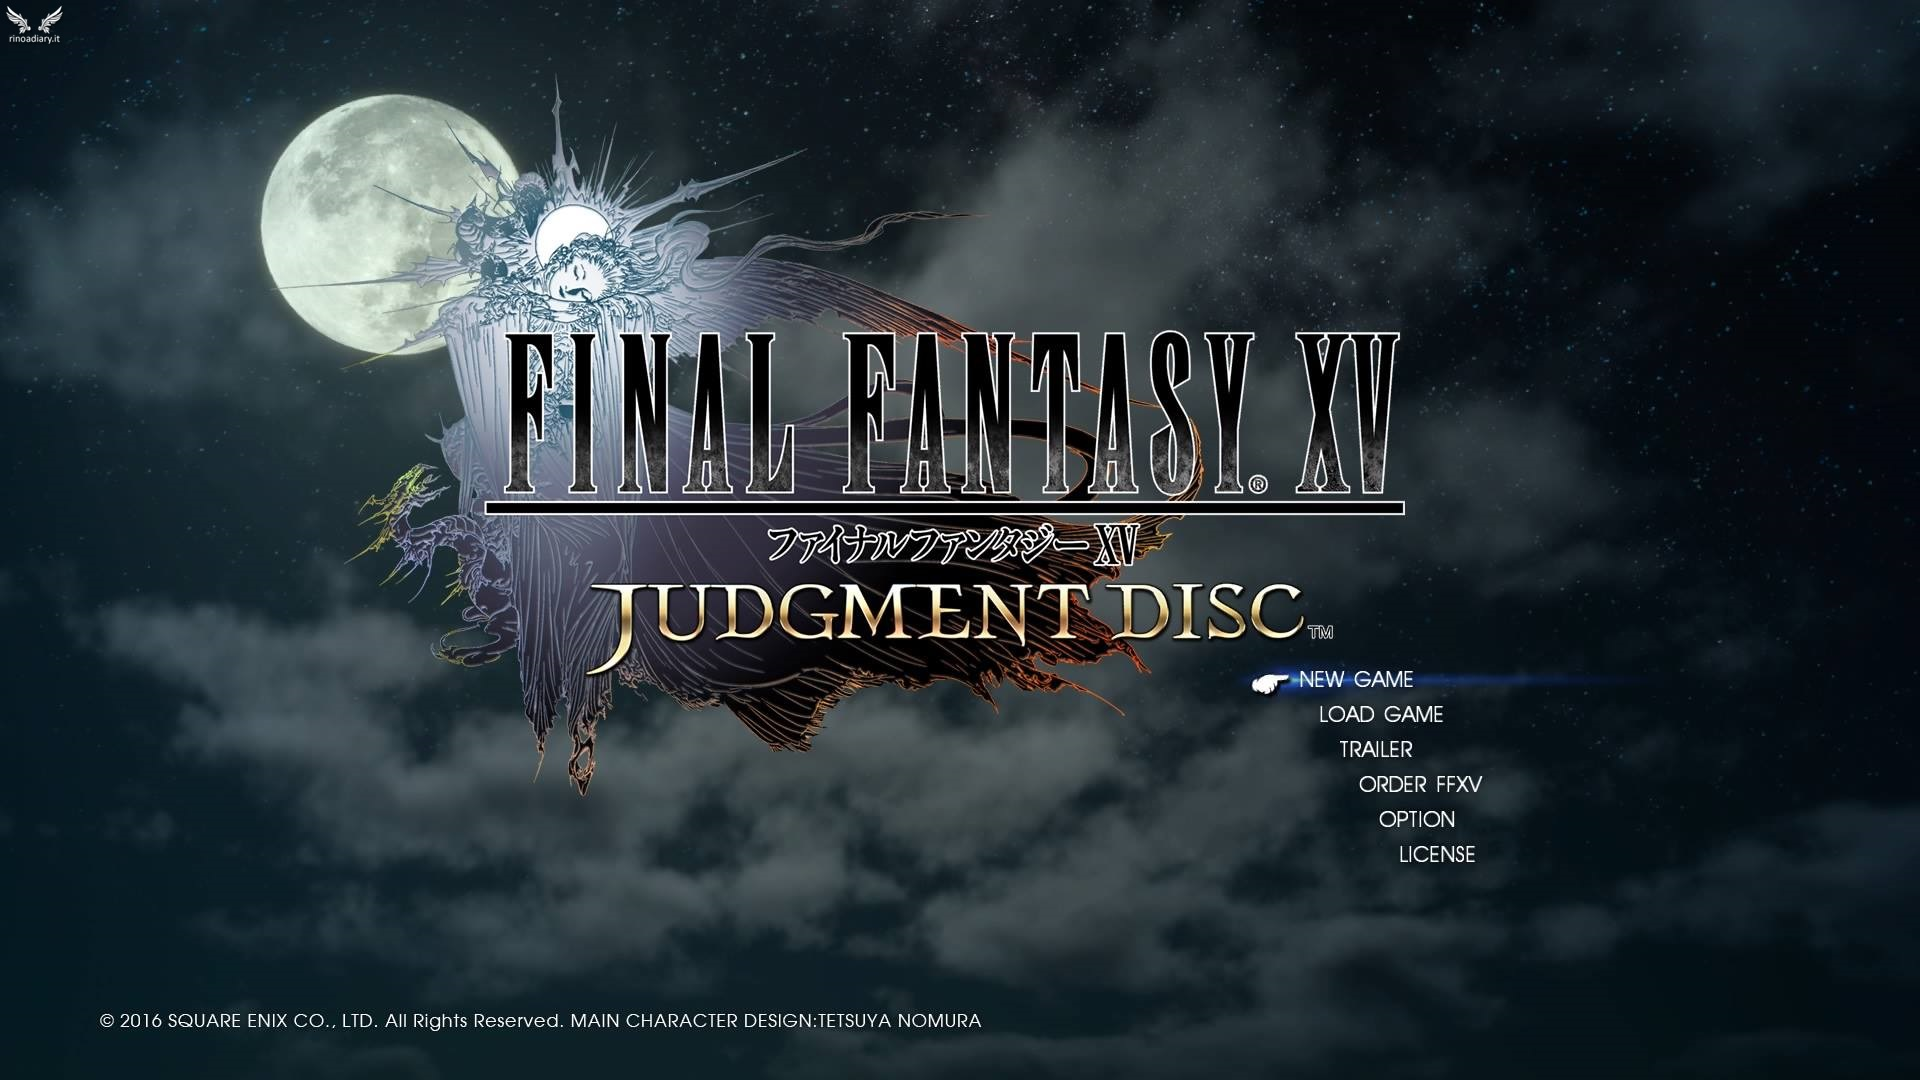 I bug della demo Judgment Disc di Final Fantasy XV